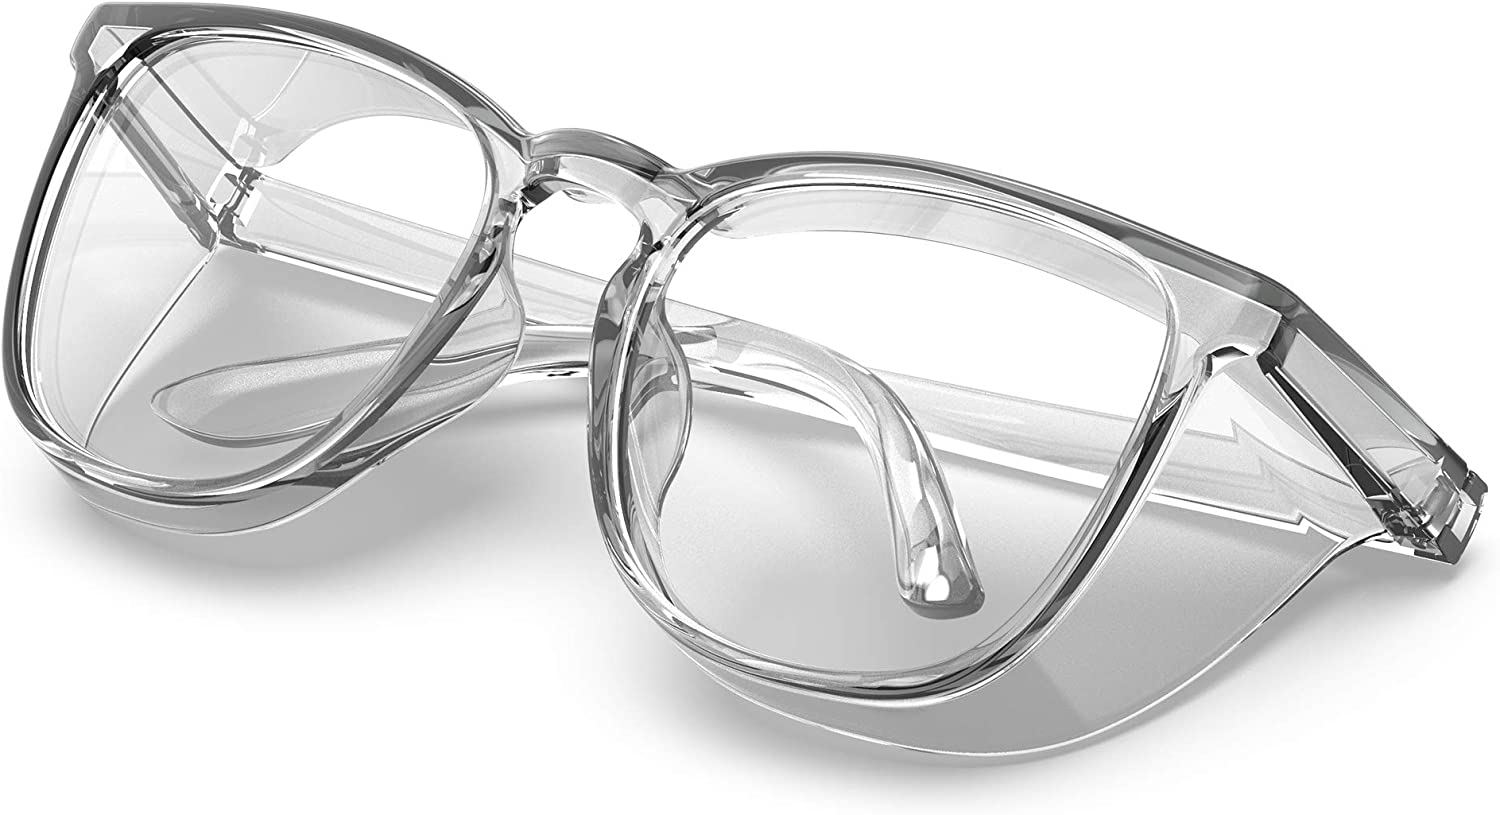 Stylish Safety Glasses Clear G Anti-Scratch Ranking TOP8 Anti-Fog Protective Topics on TV